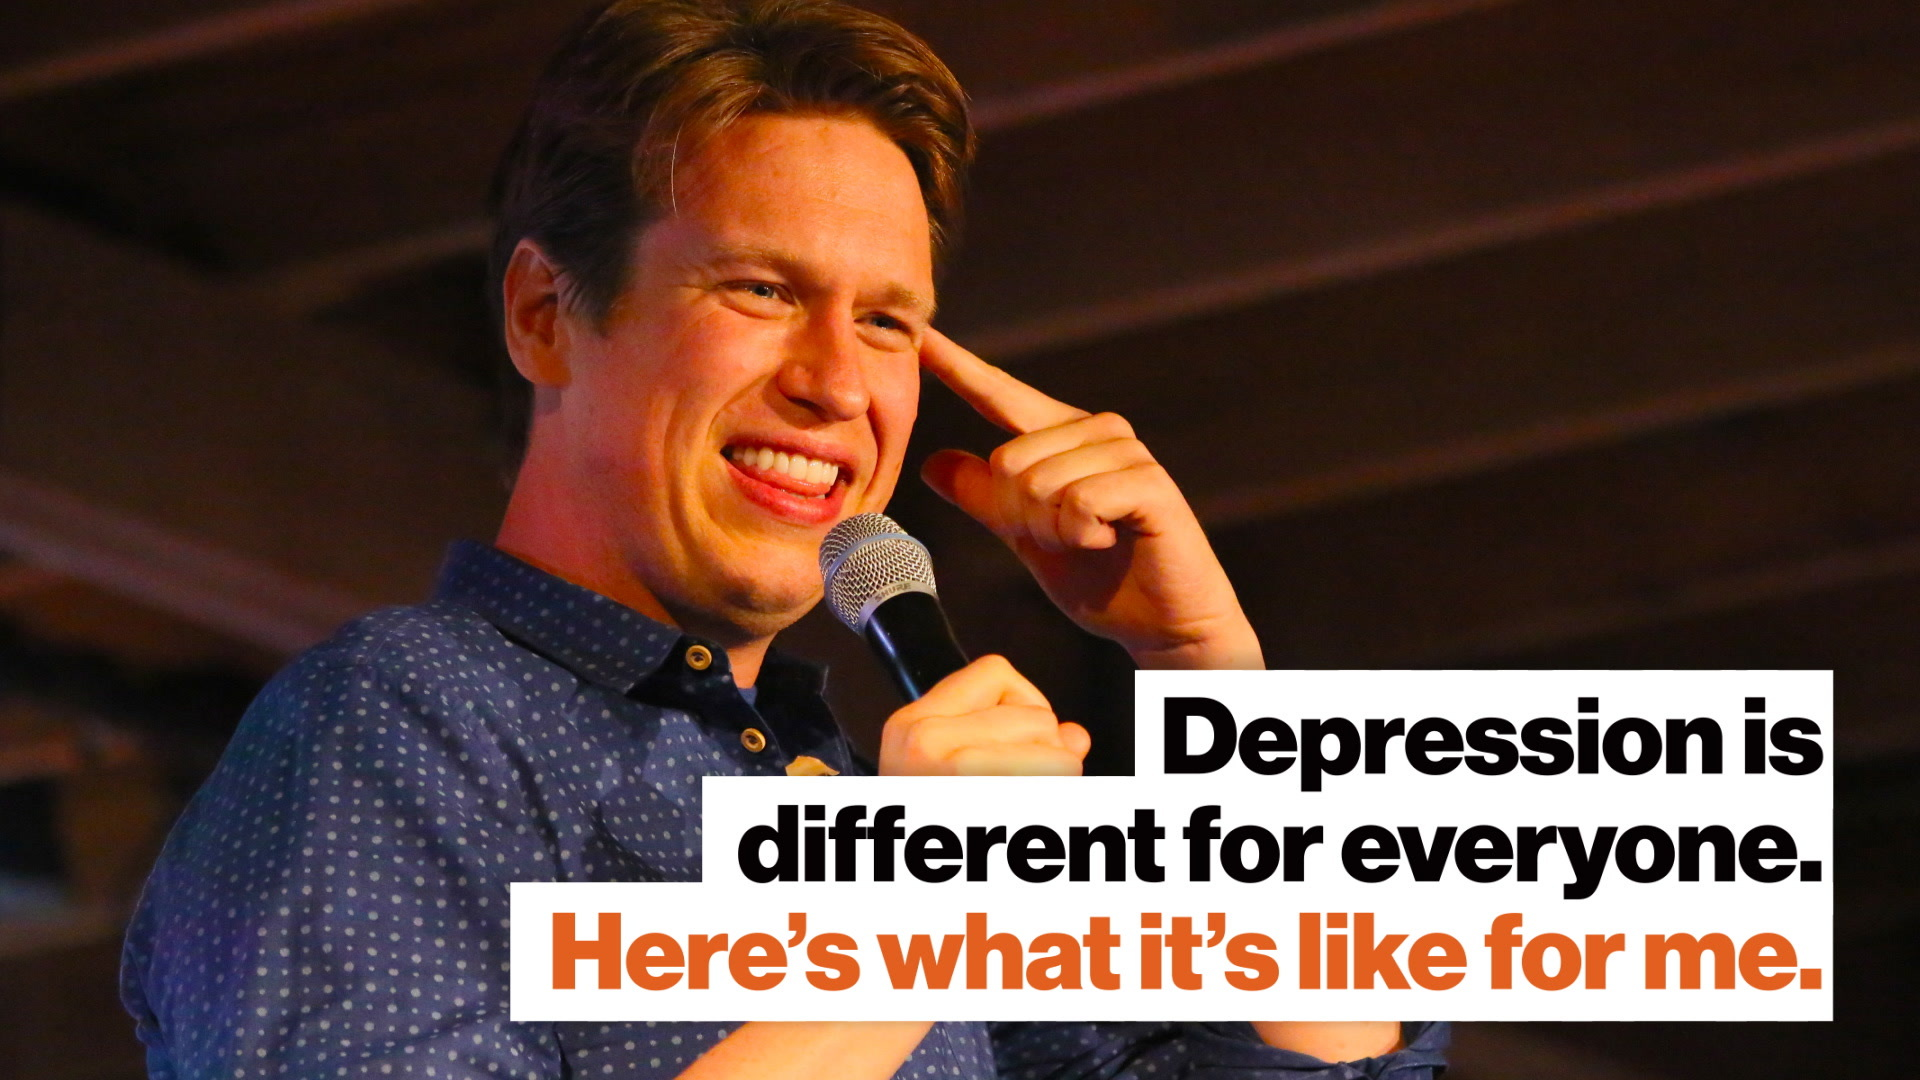 Depression is different for everyone. Here's what it's like for me.